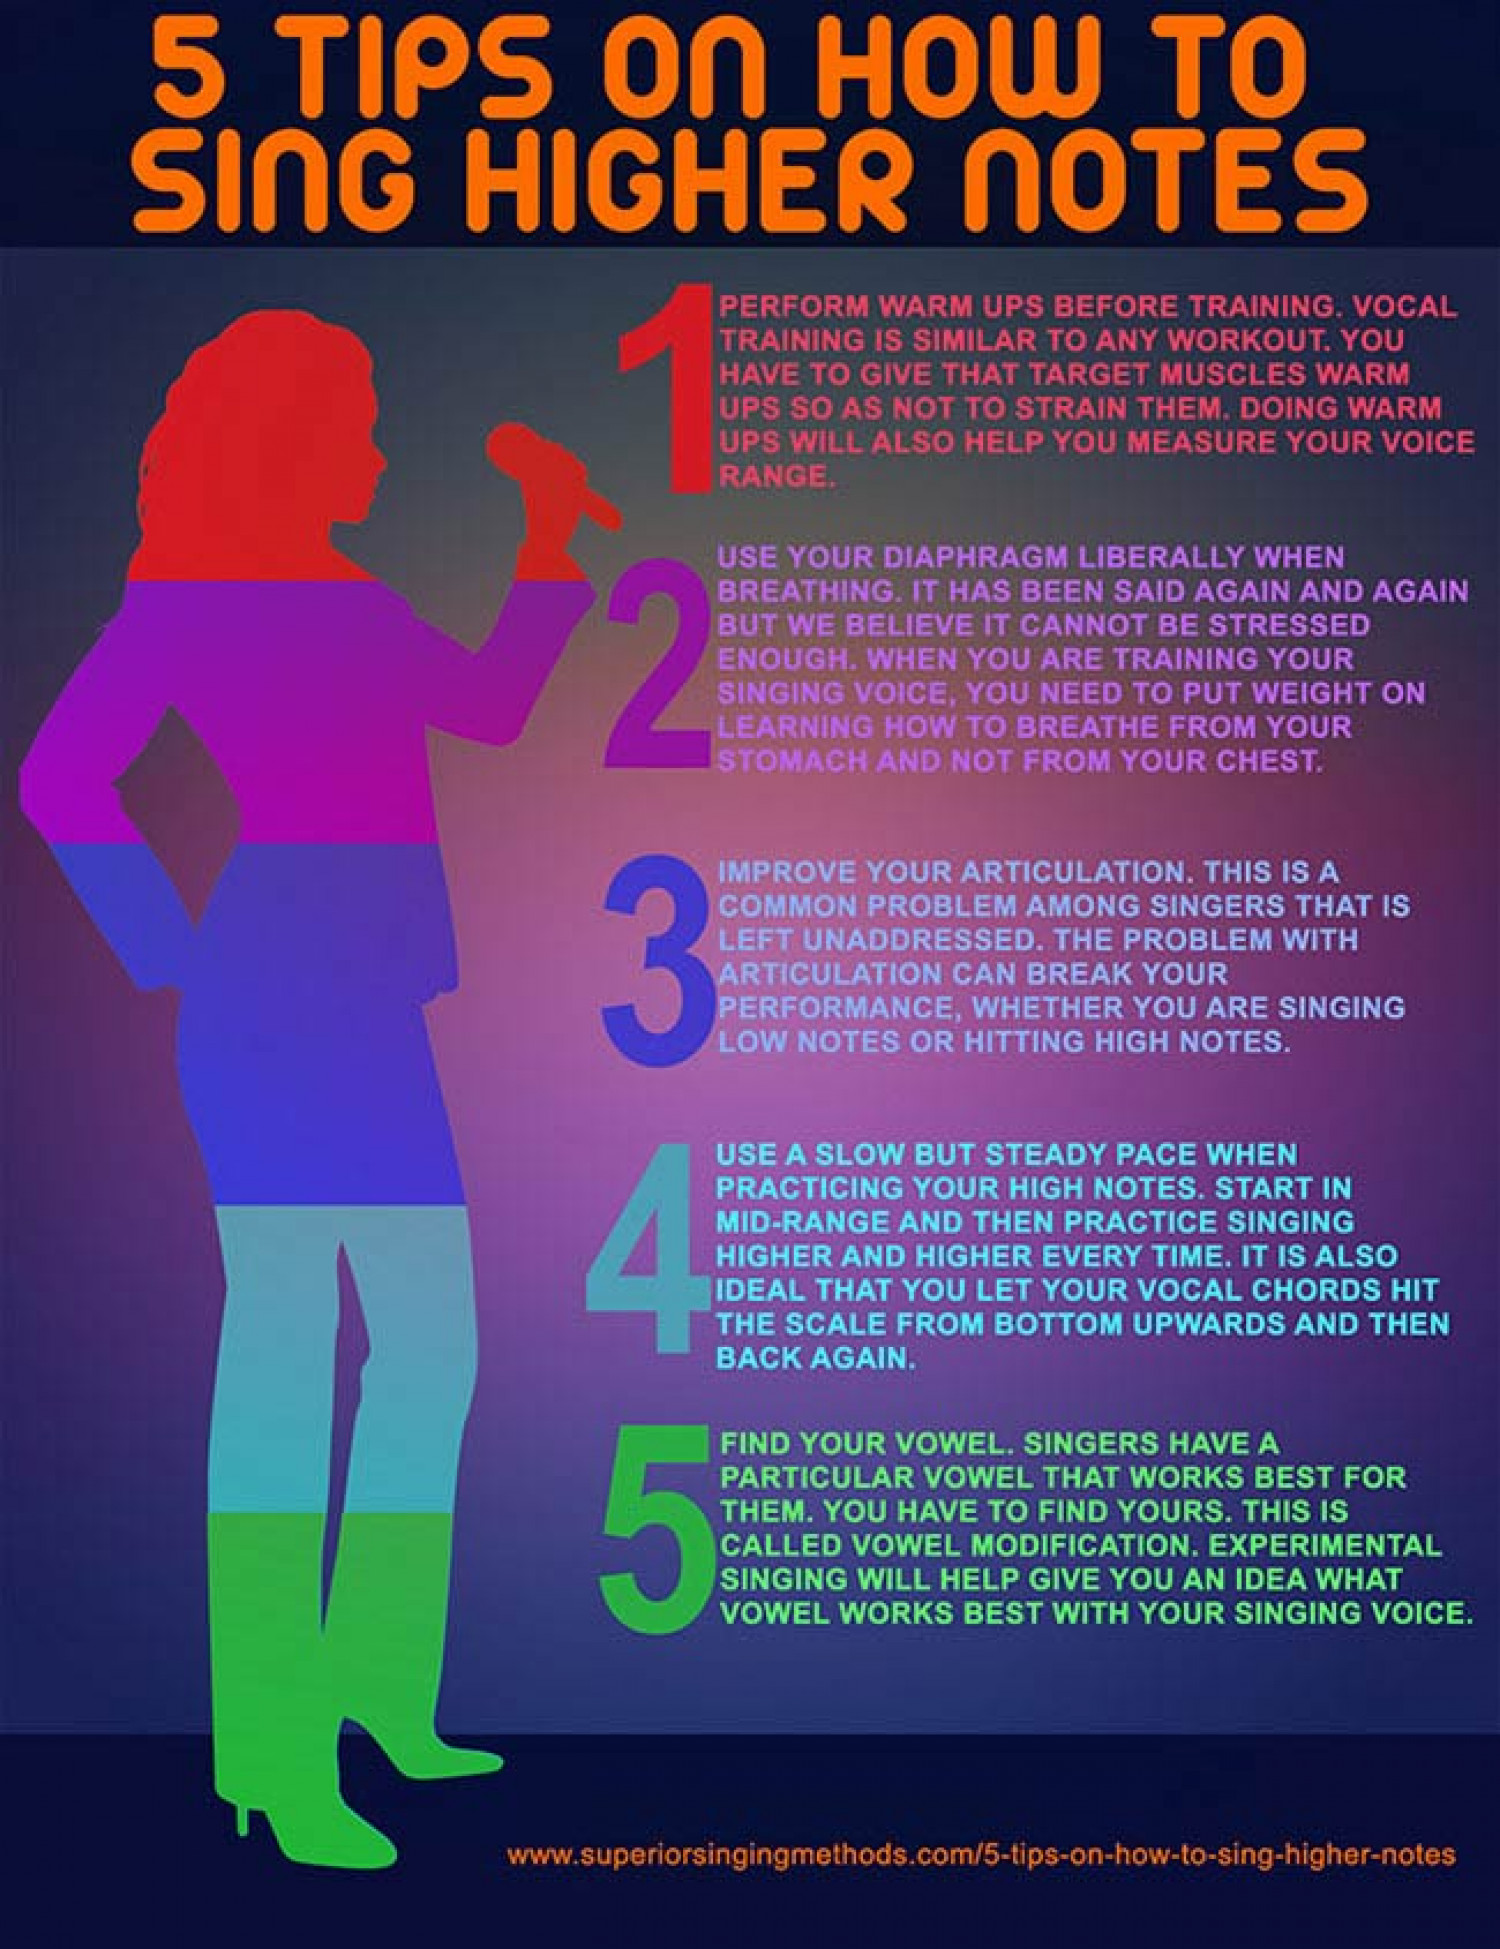 How to Sing Higher Notes Infographic